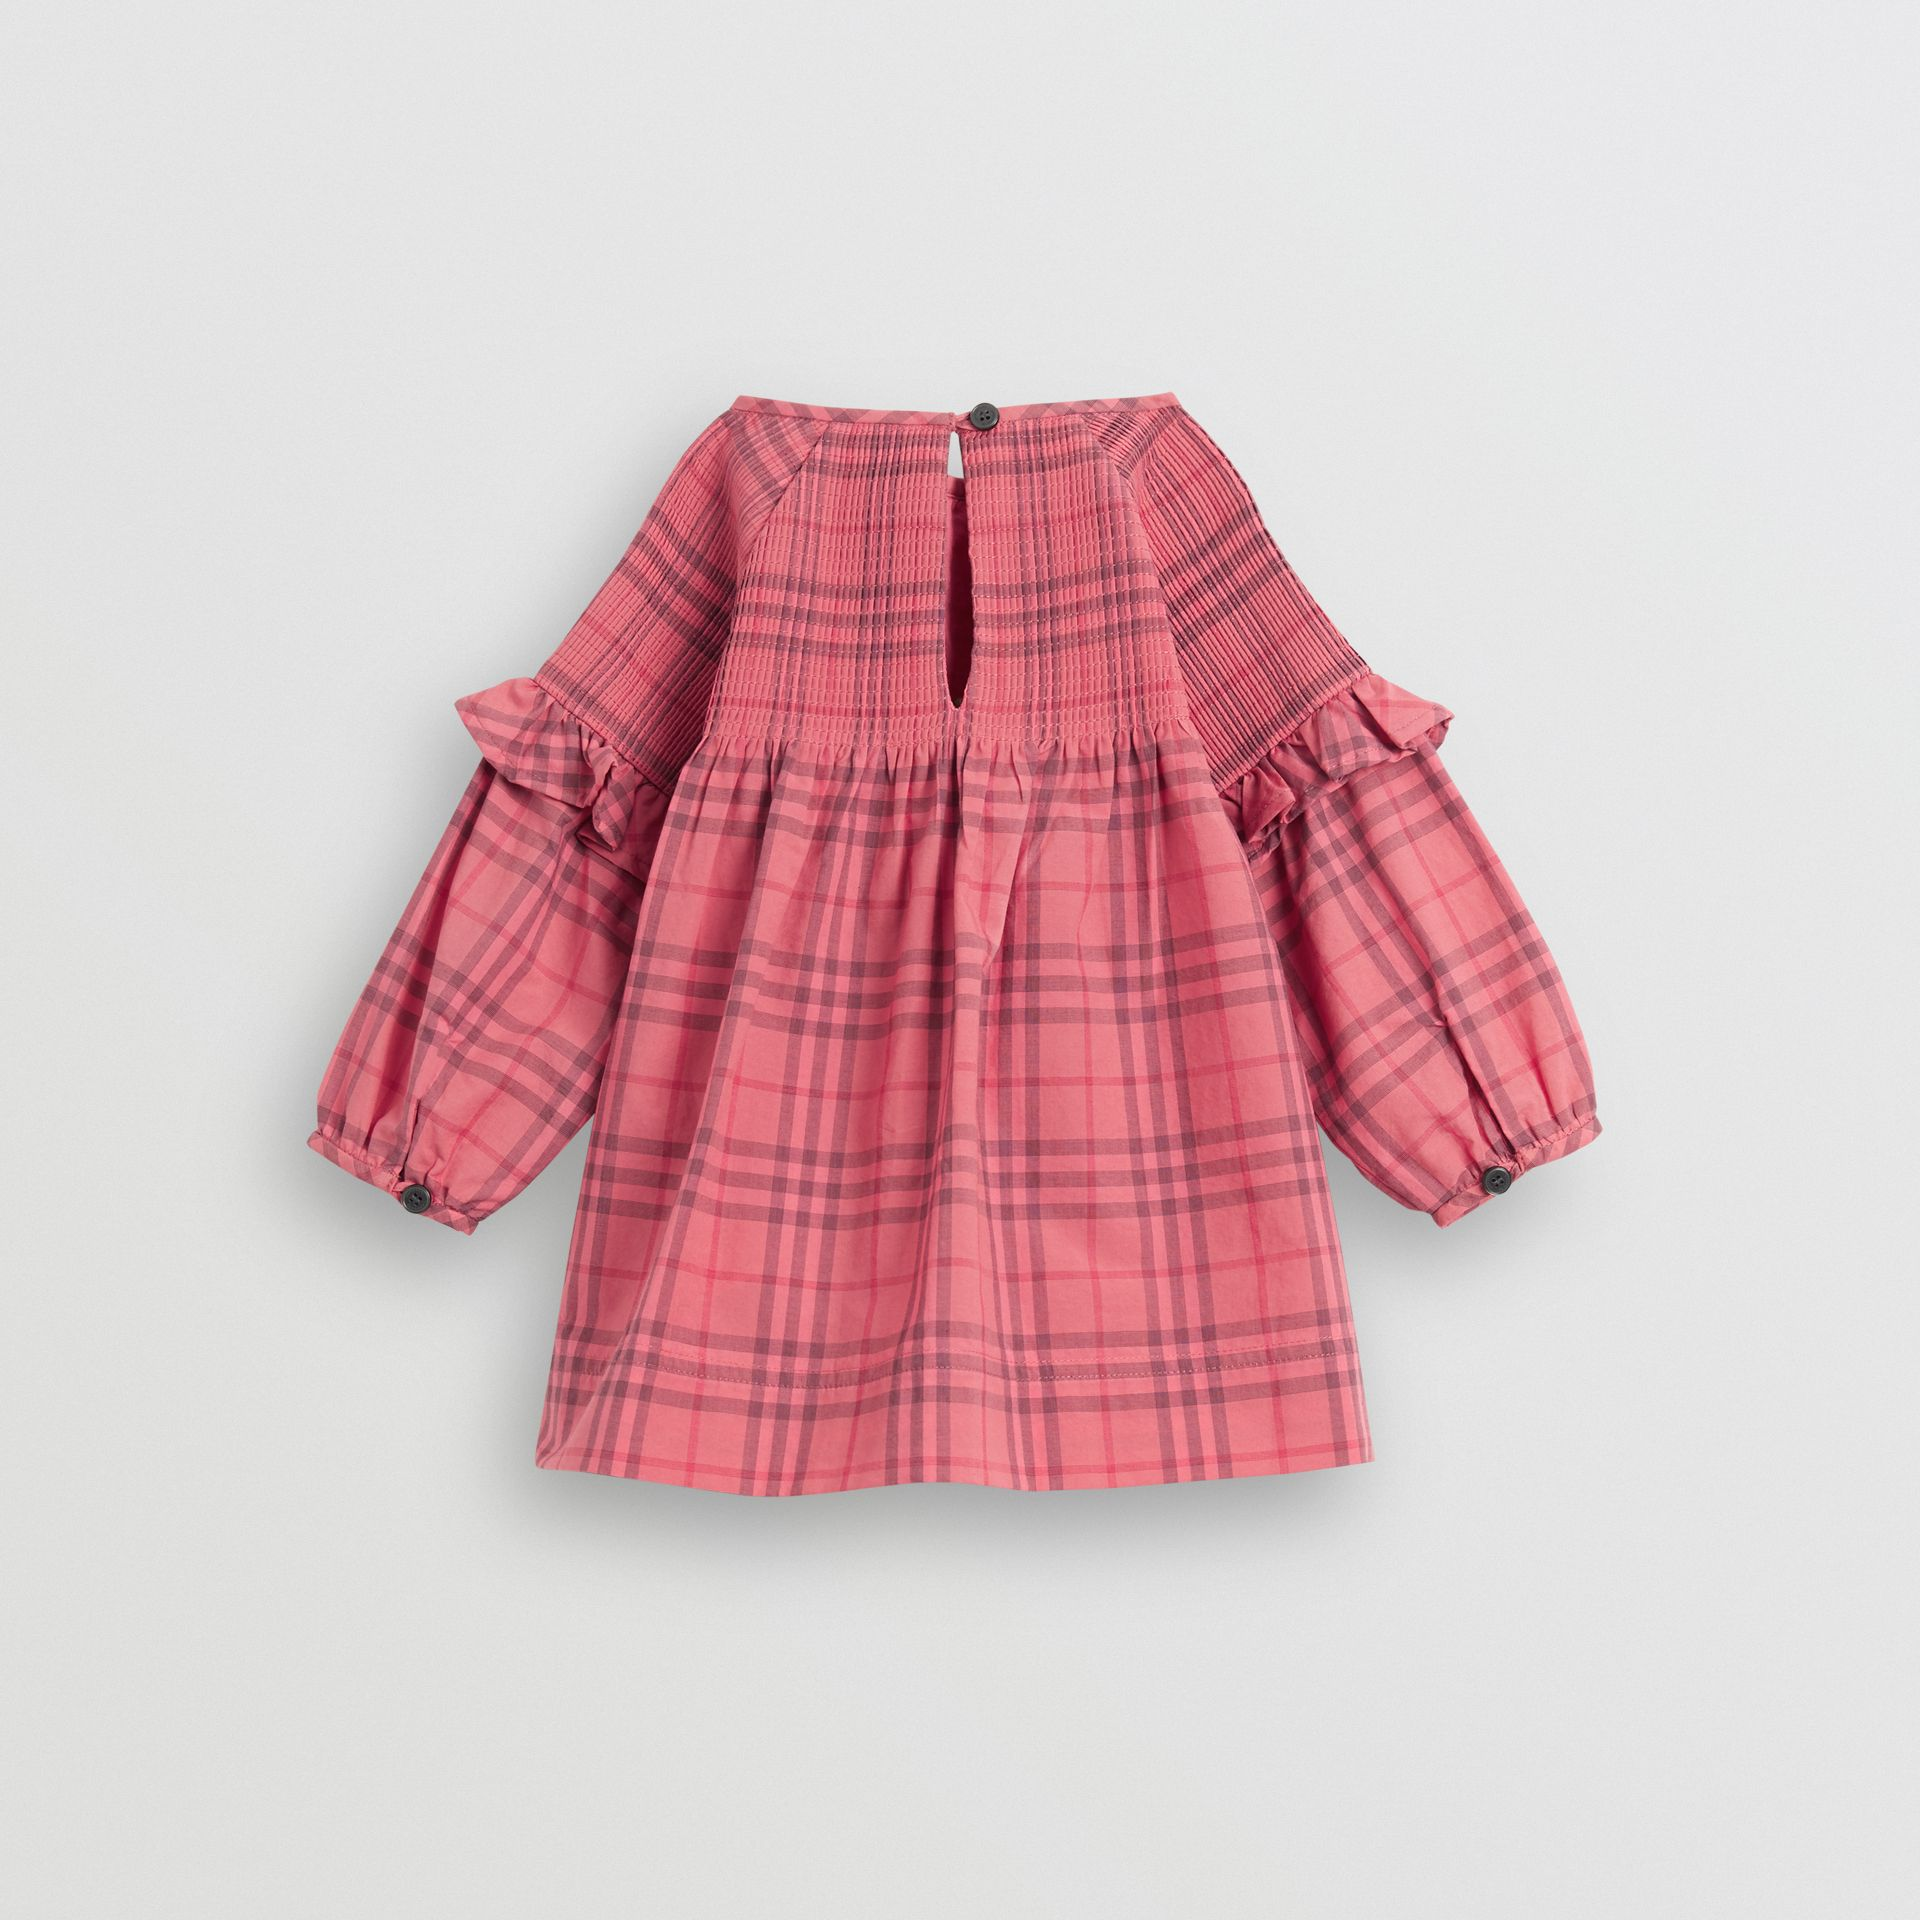 Ruffle Detail Check Cotton Dress in Coral Red - Children | Burberry - gallery image 3